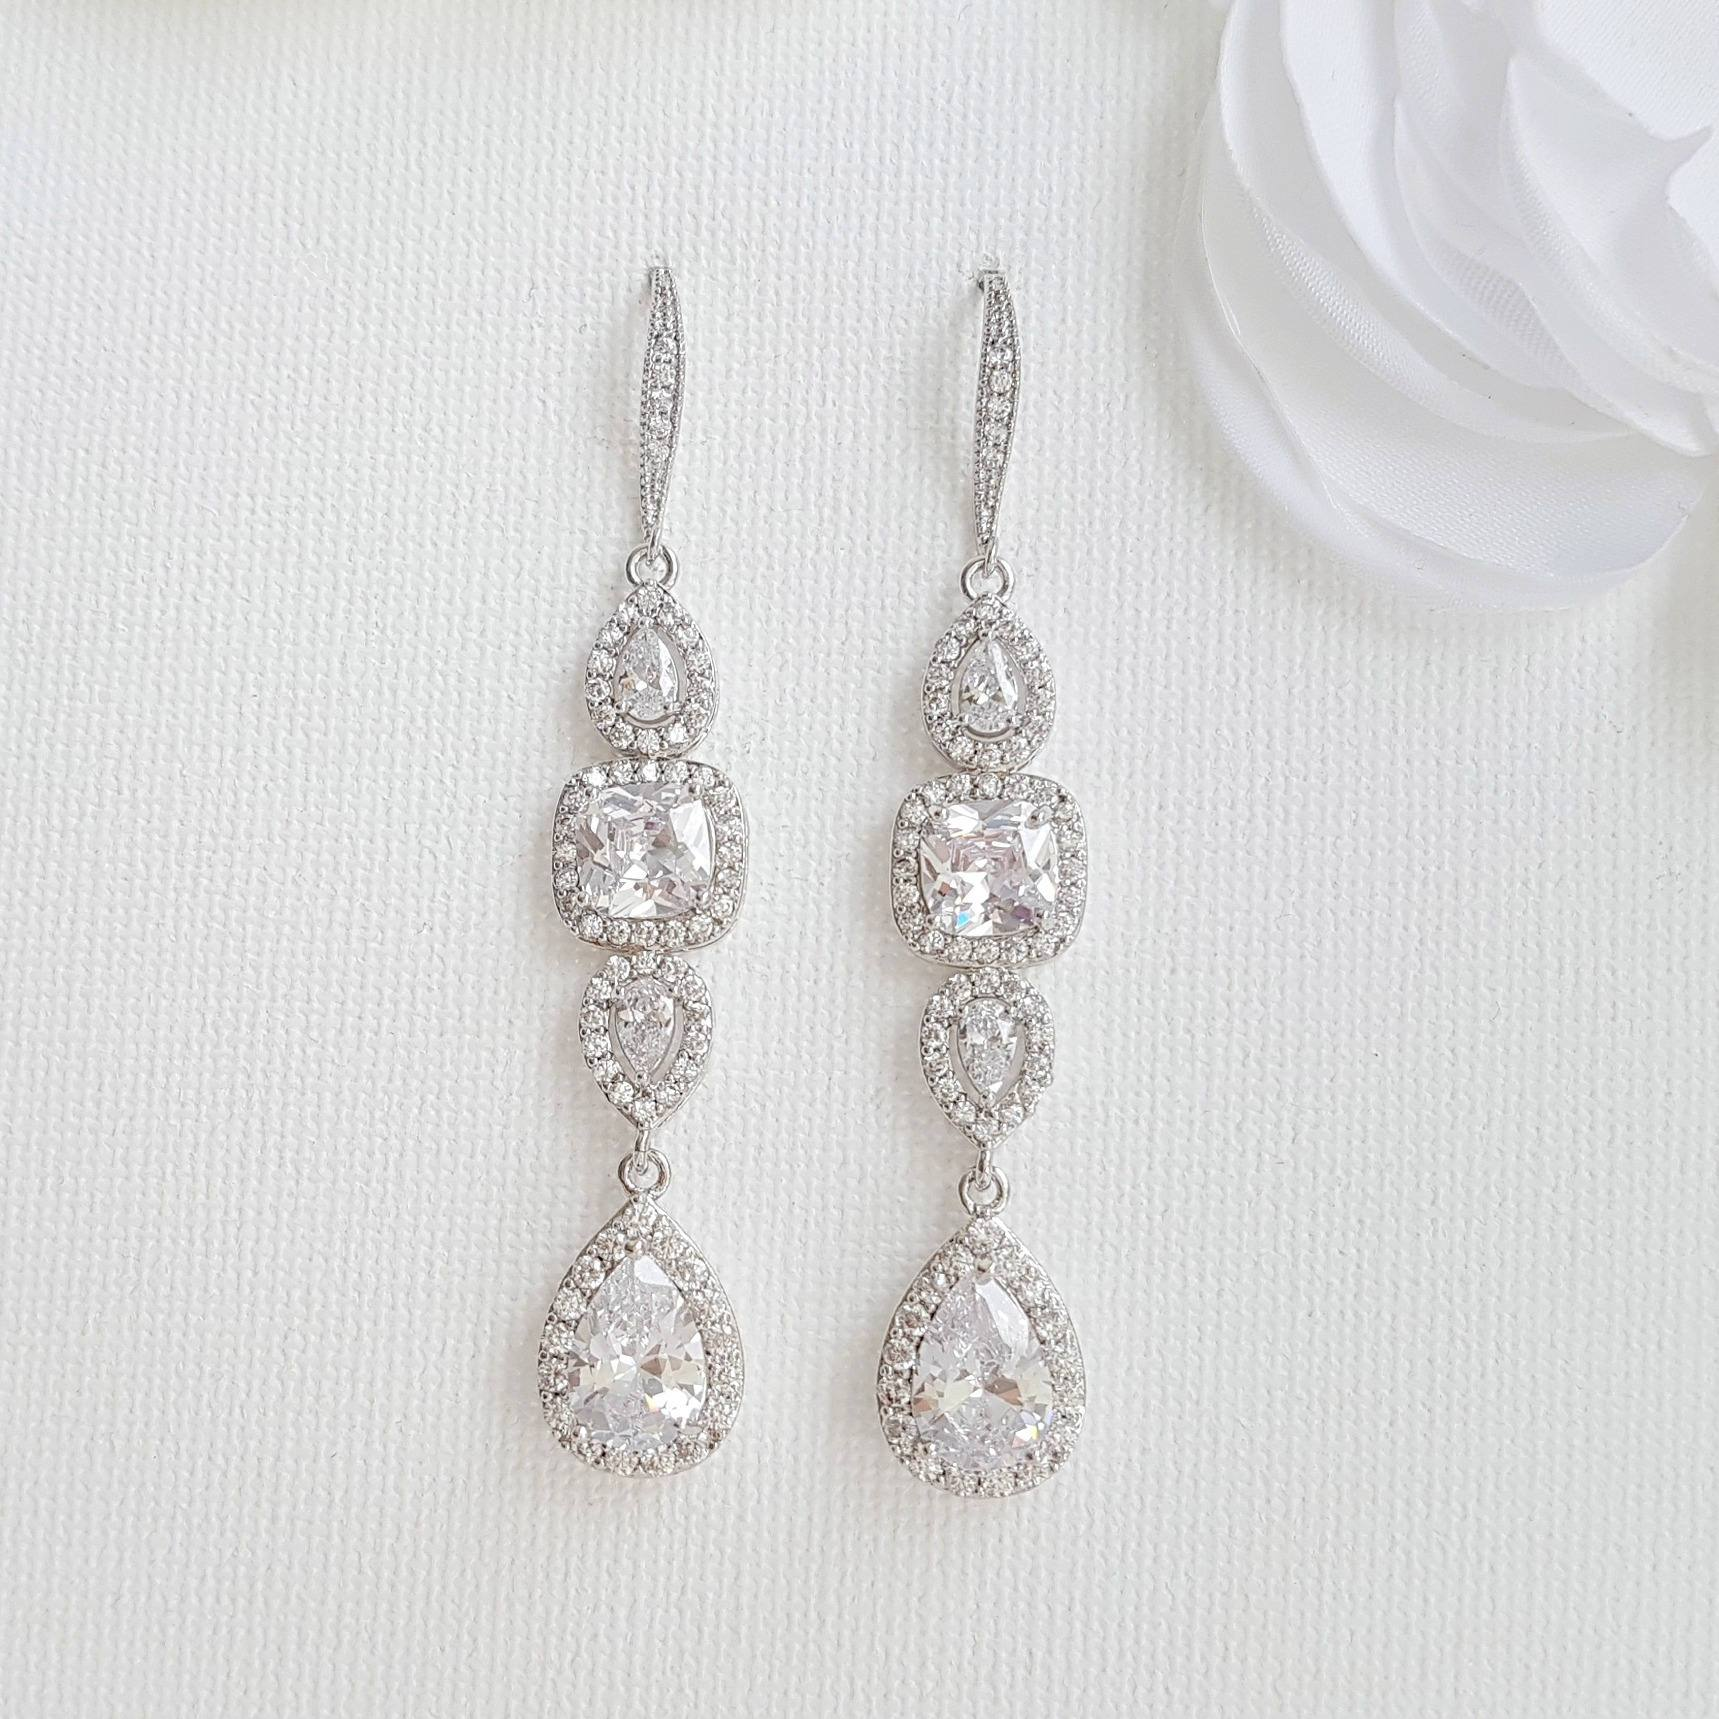 Cubic Zirconia Drop Earrings for Weddings- Gianna - PoetryDesigns